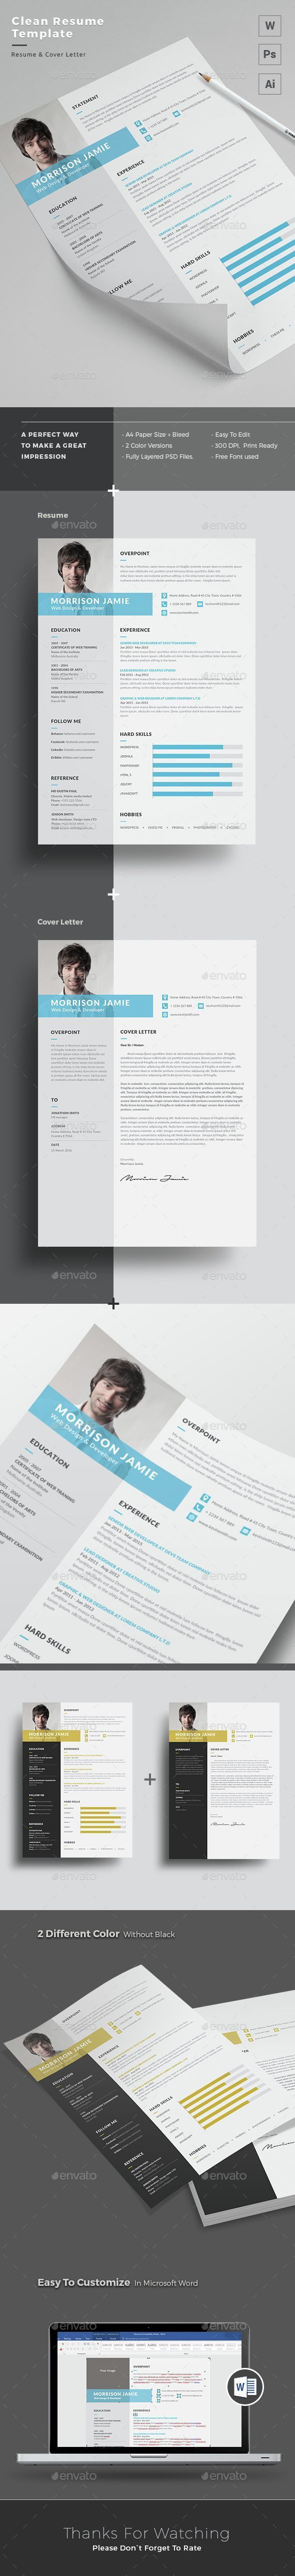 graphic design resume template%0A Resume Template PSD  Vector AI  Download here